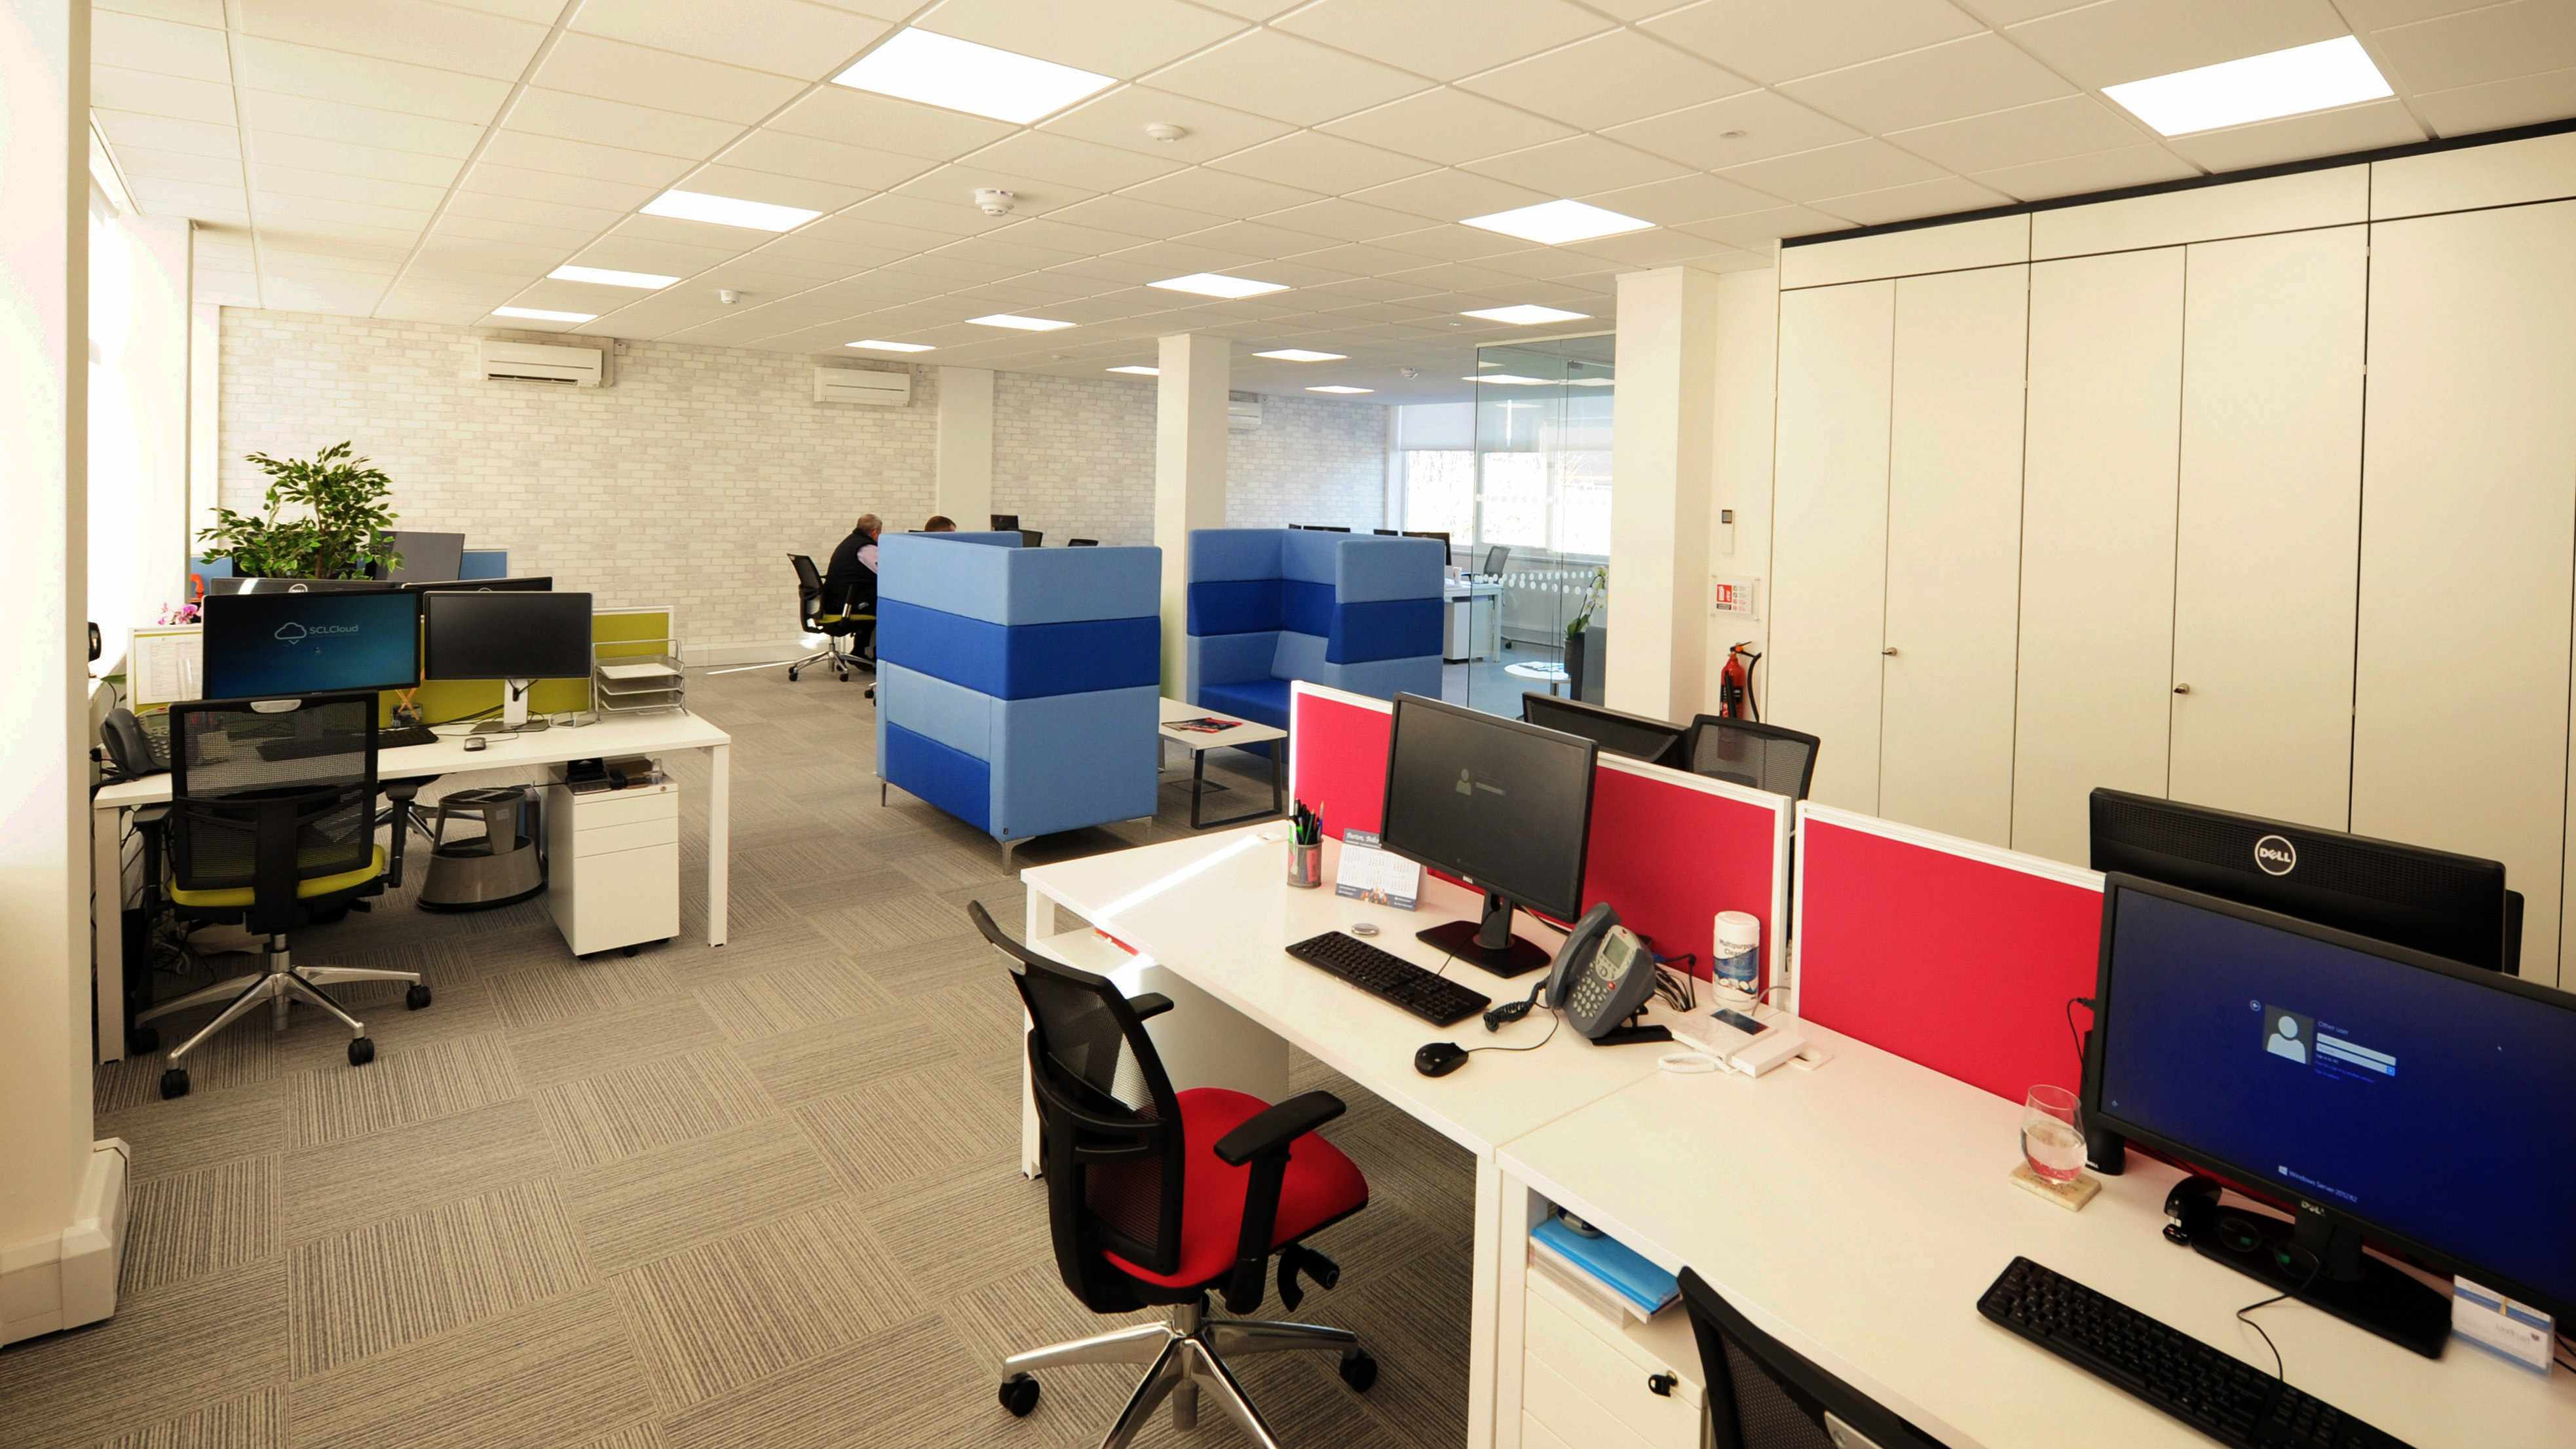 Creating a 'culture of improvement' in your office interiors